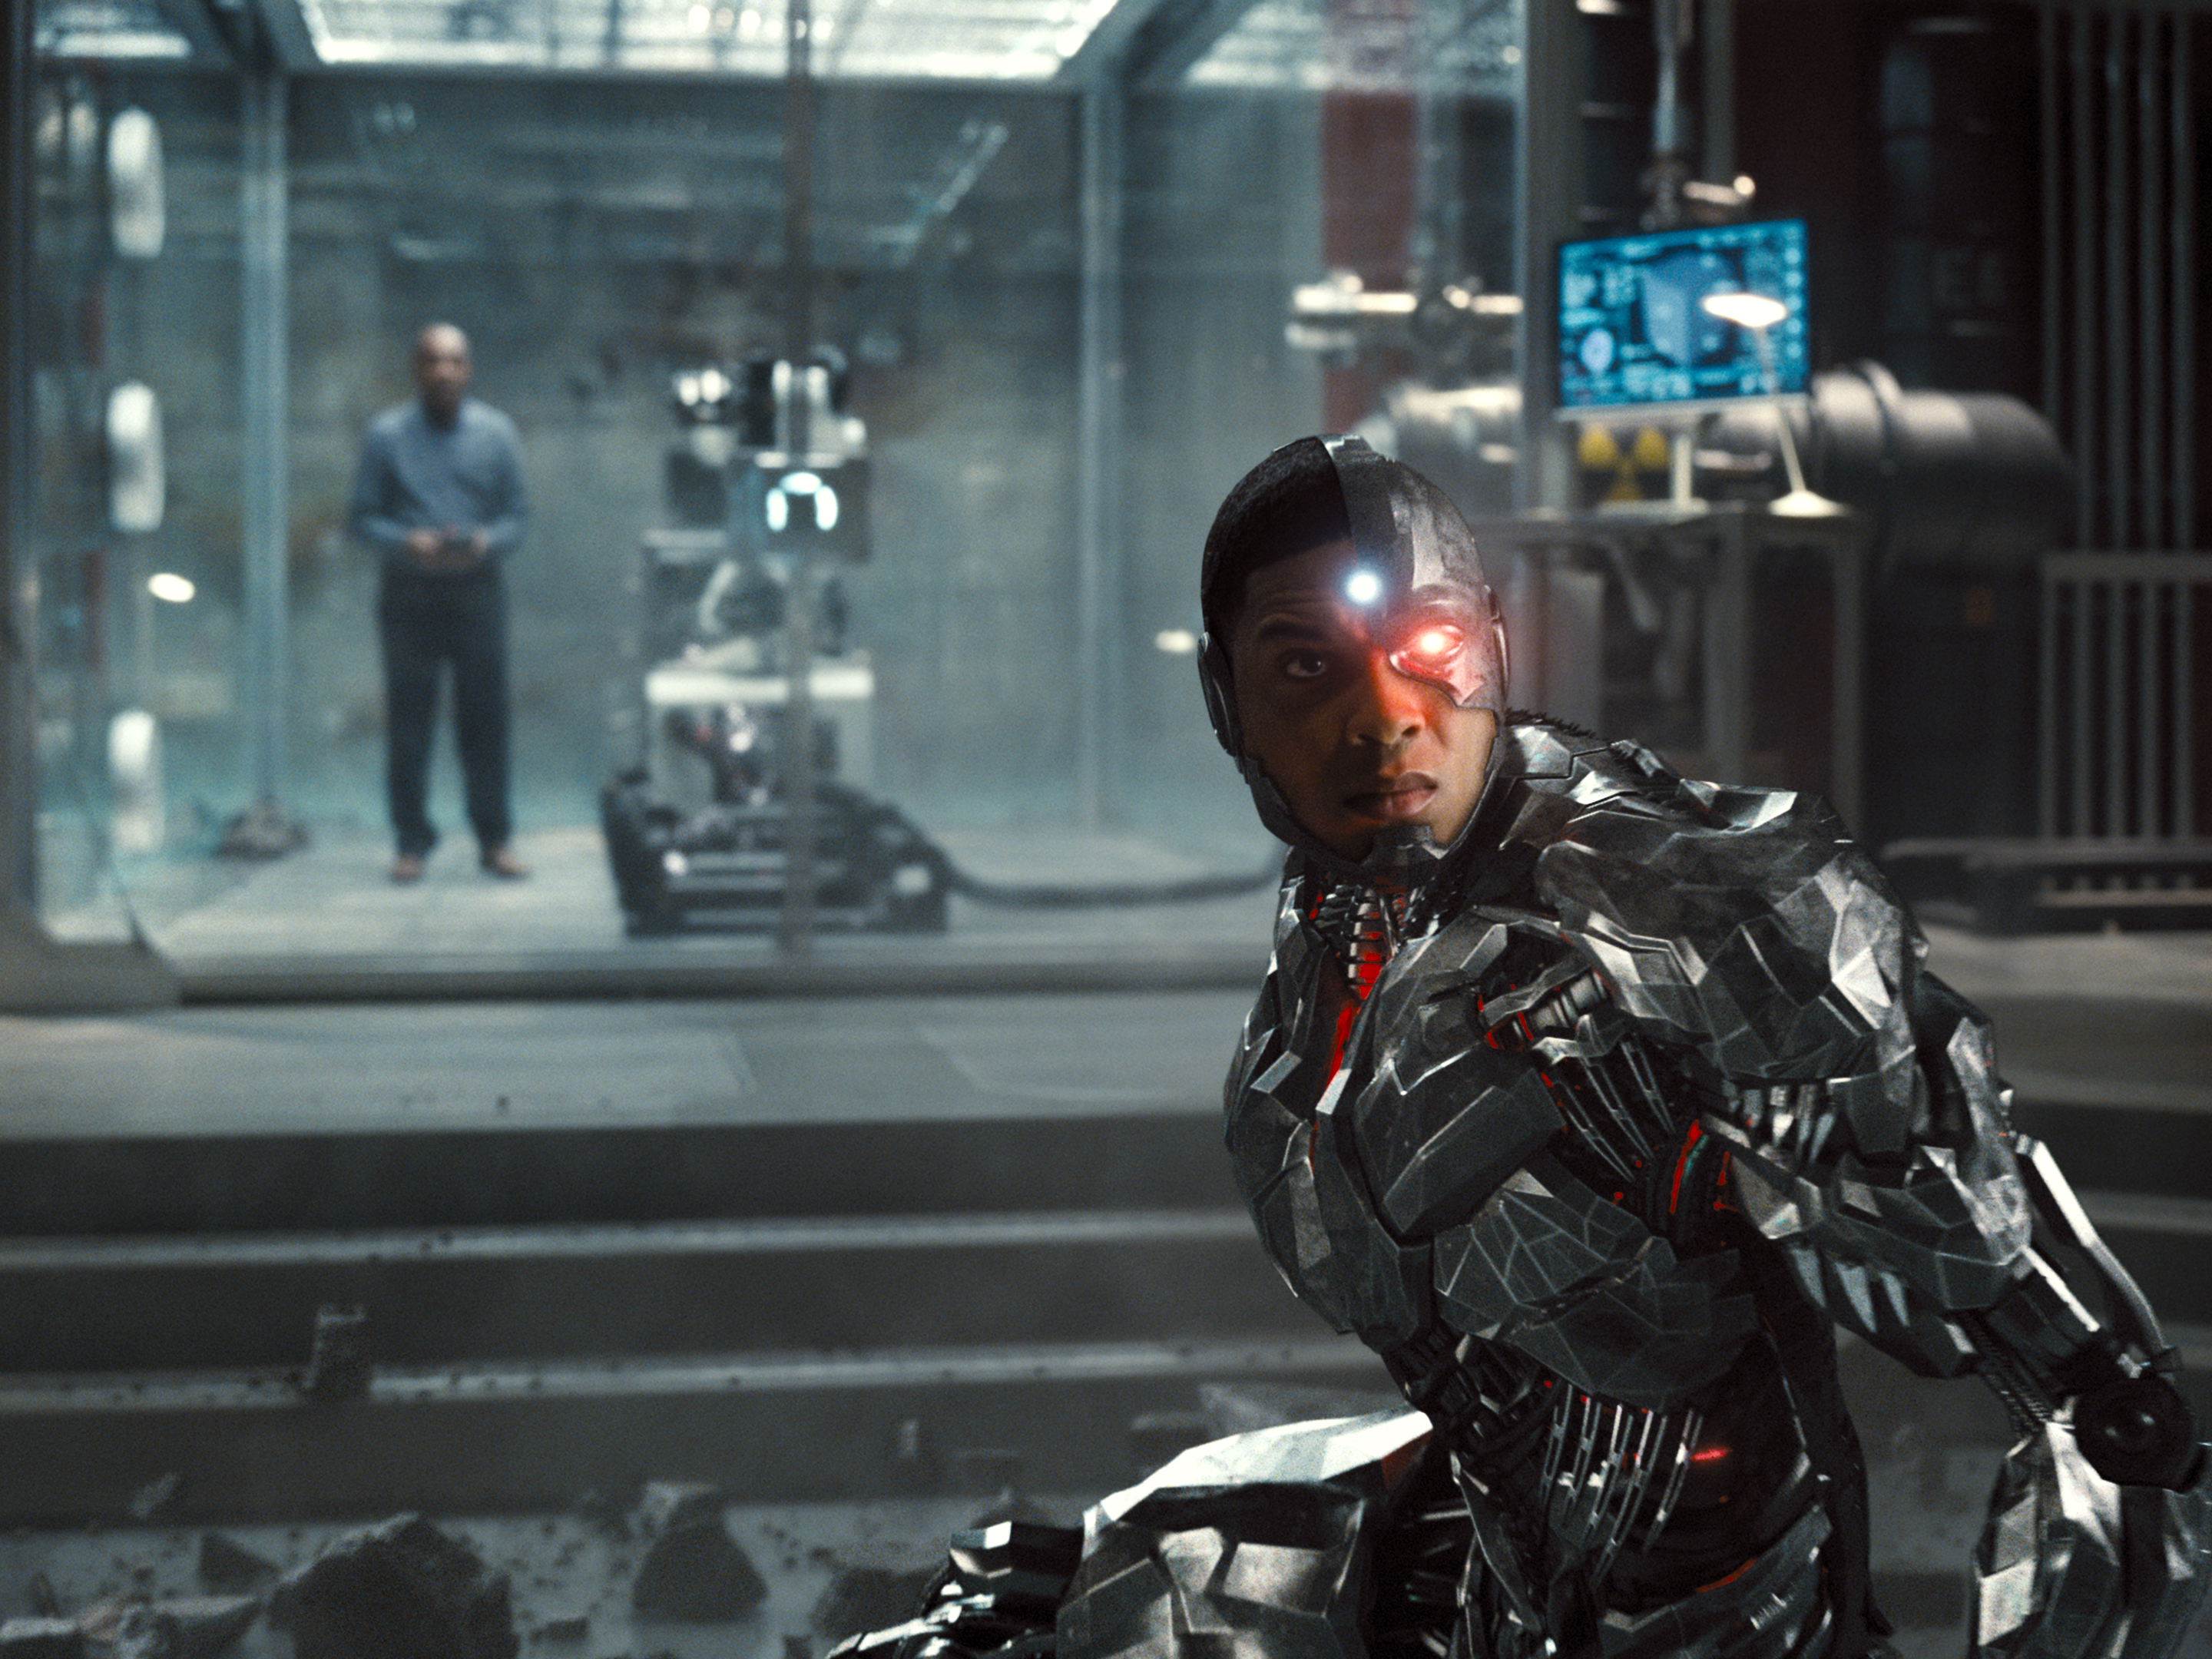 Ray Fisher in Zack Snyder's cut of Justice League